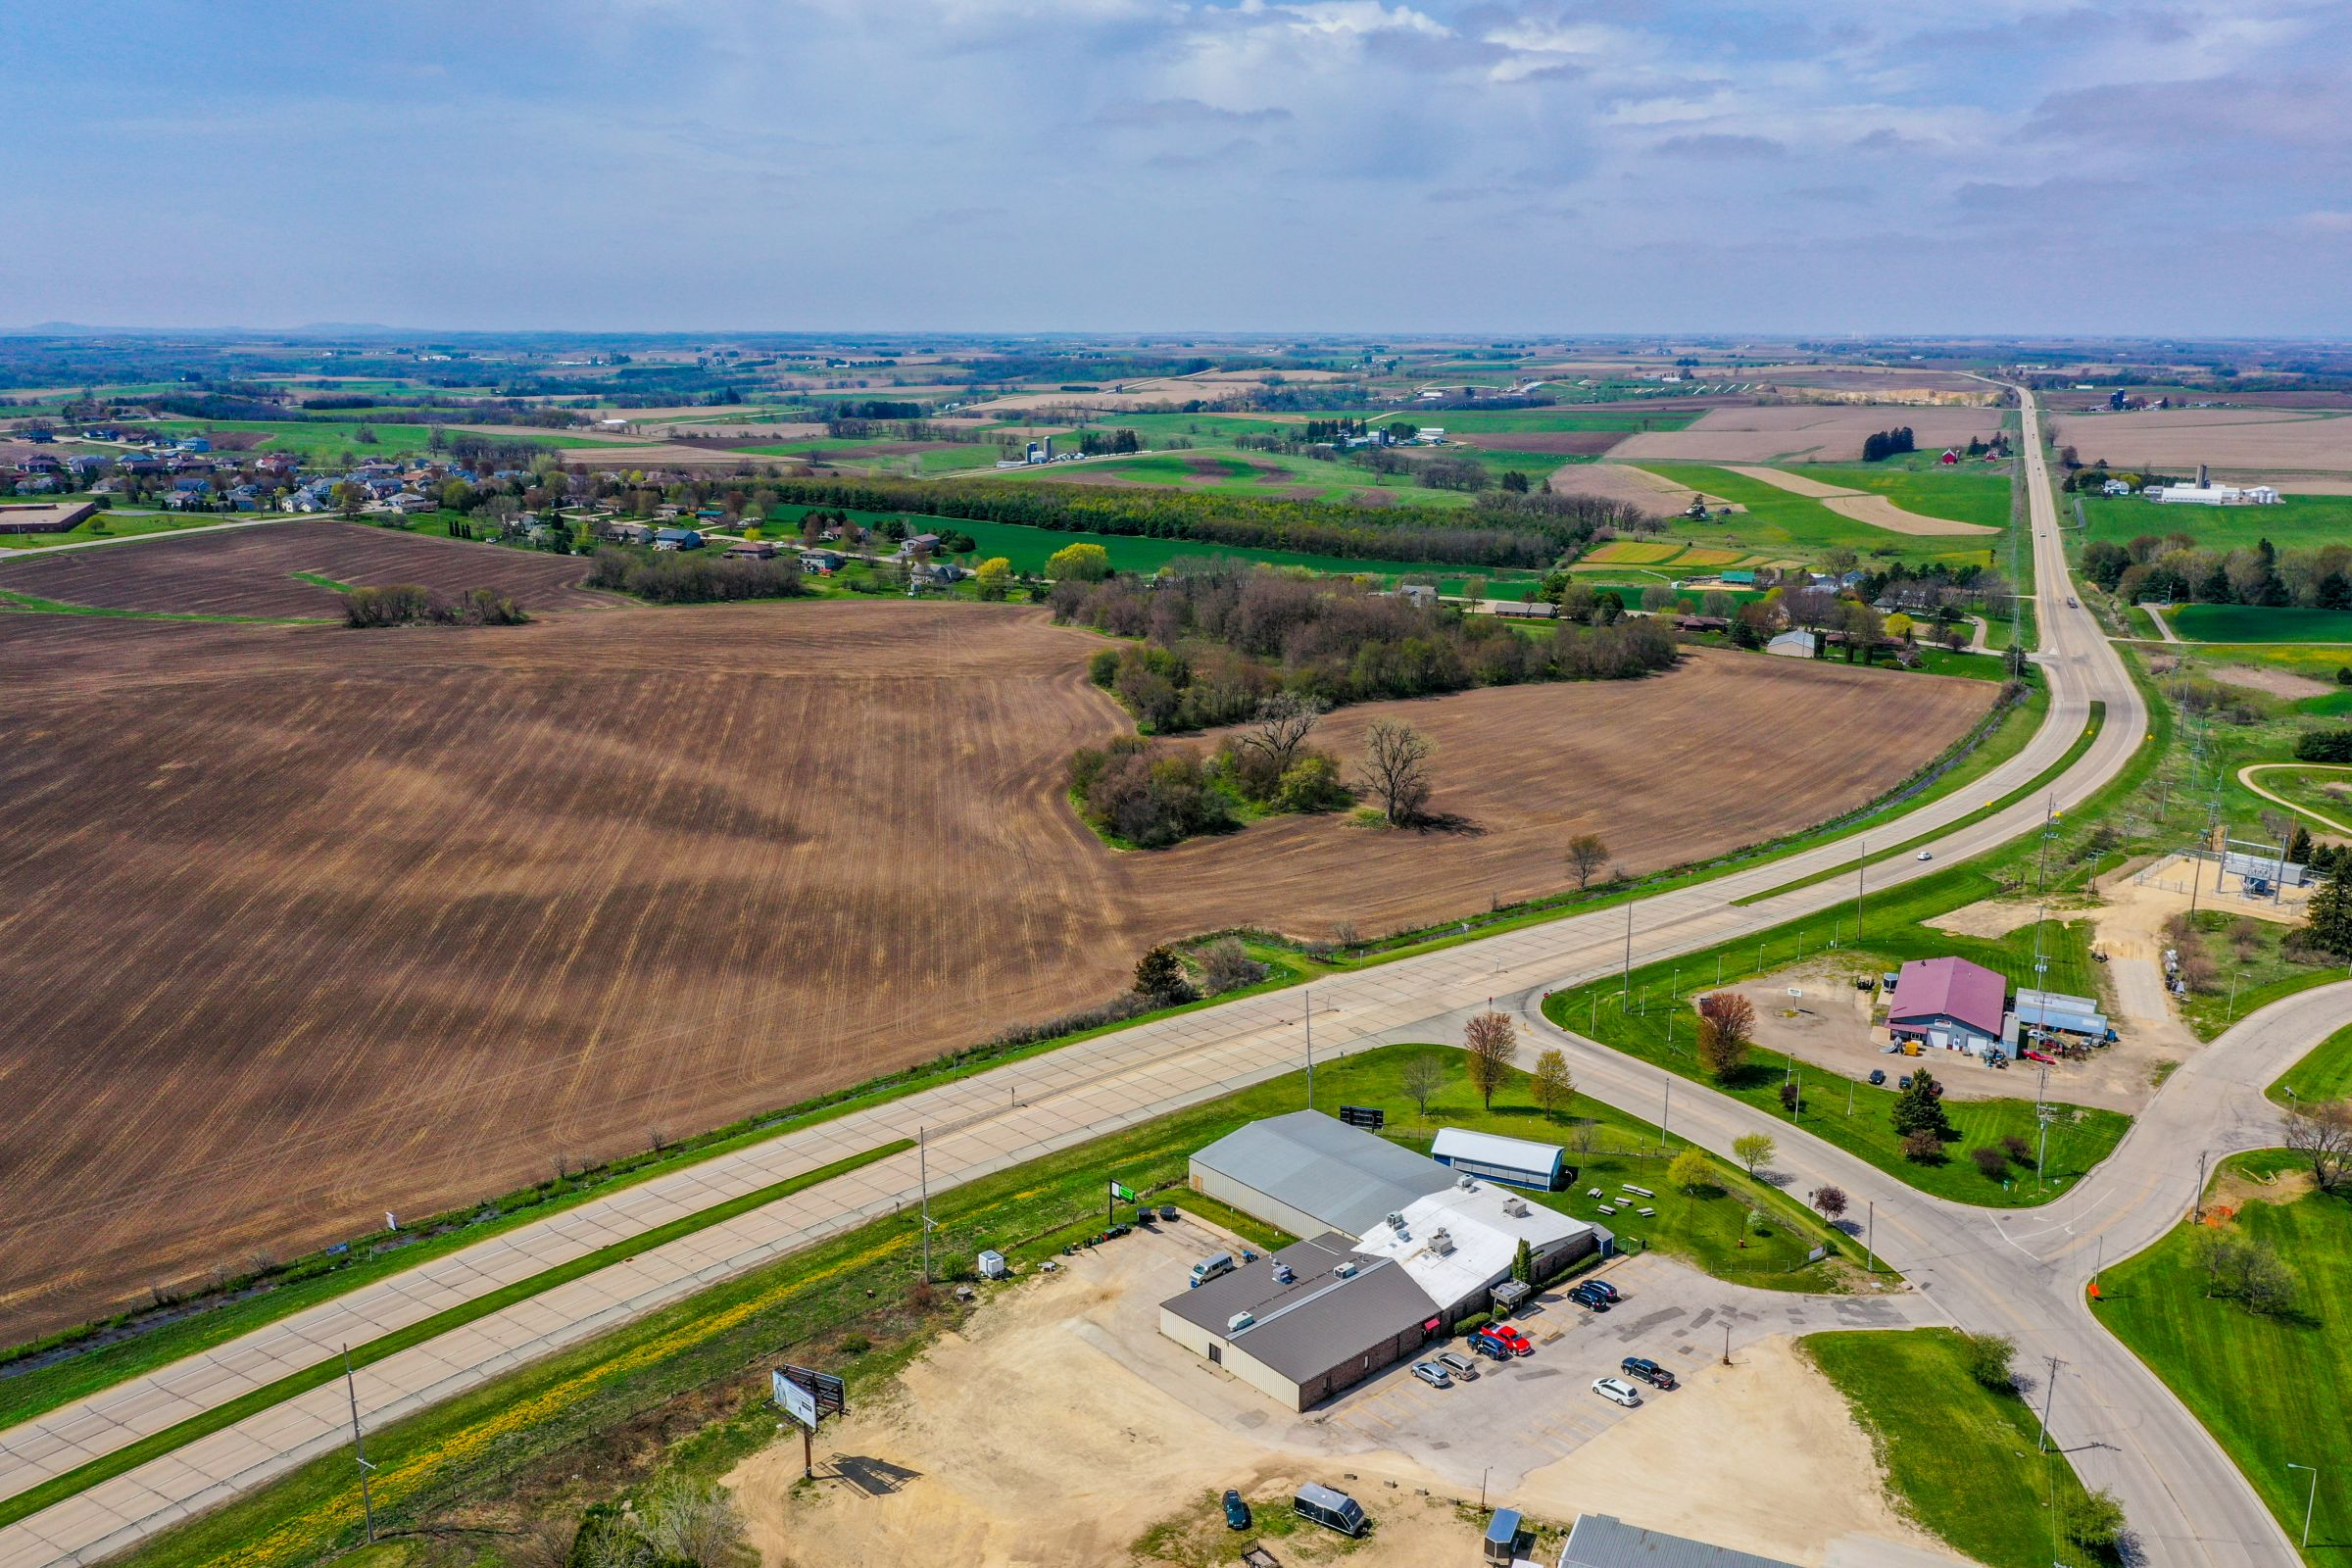 development-land-commercial-iowa-county-wisconsin-152-acres-listing-number-15474-2-2021-05-18-163547.jpg